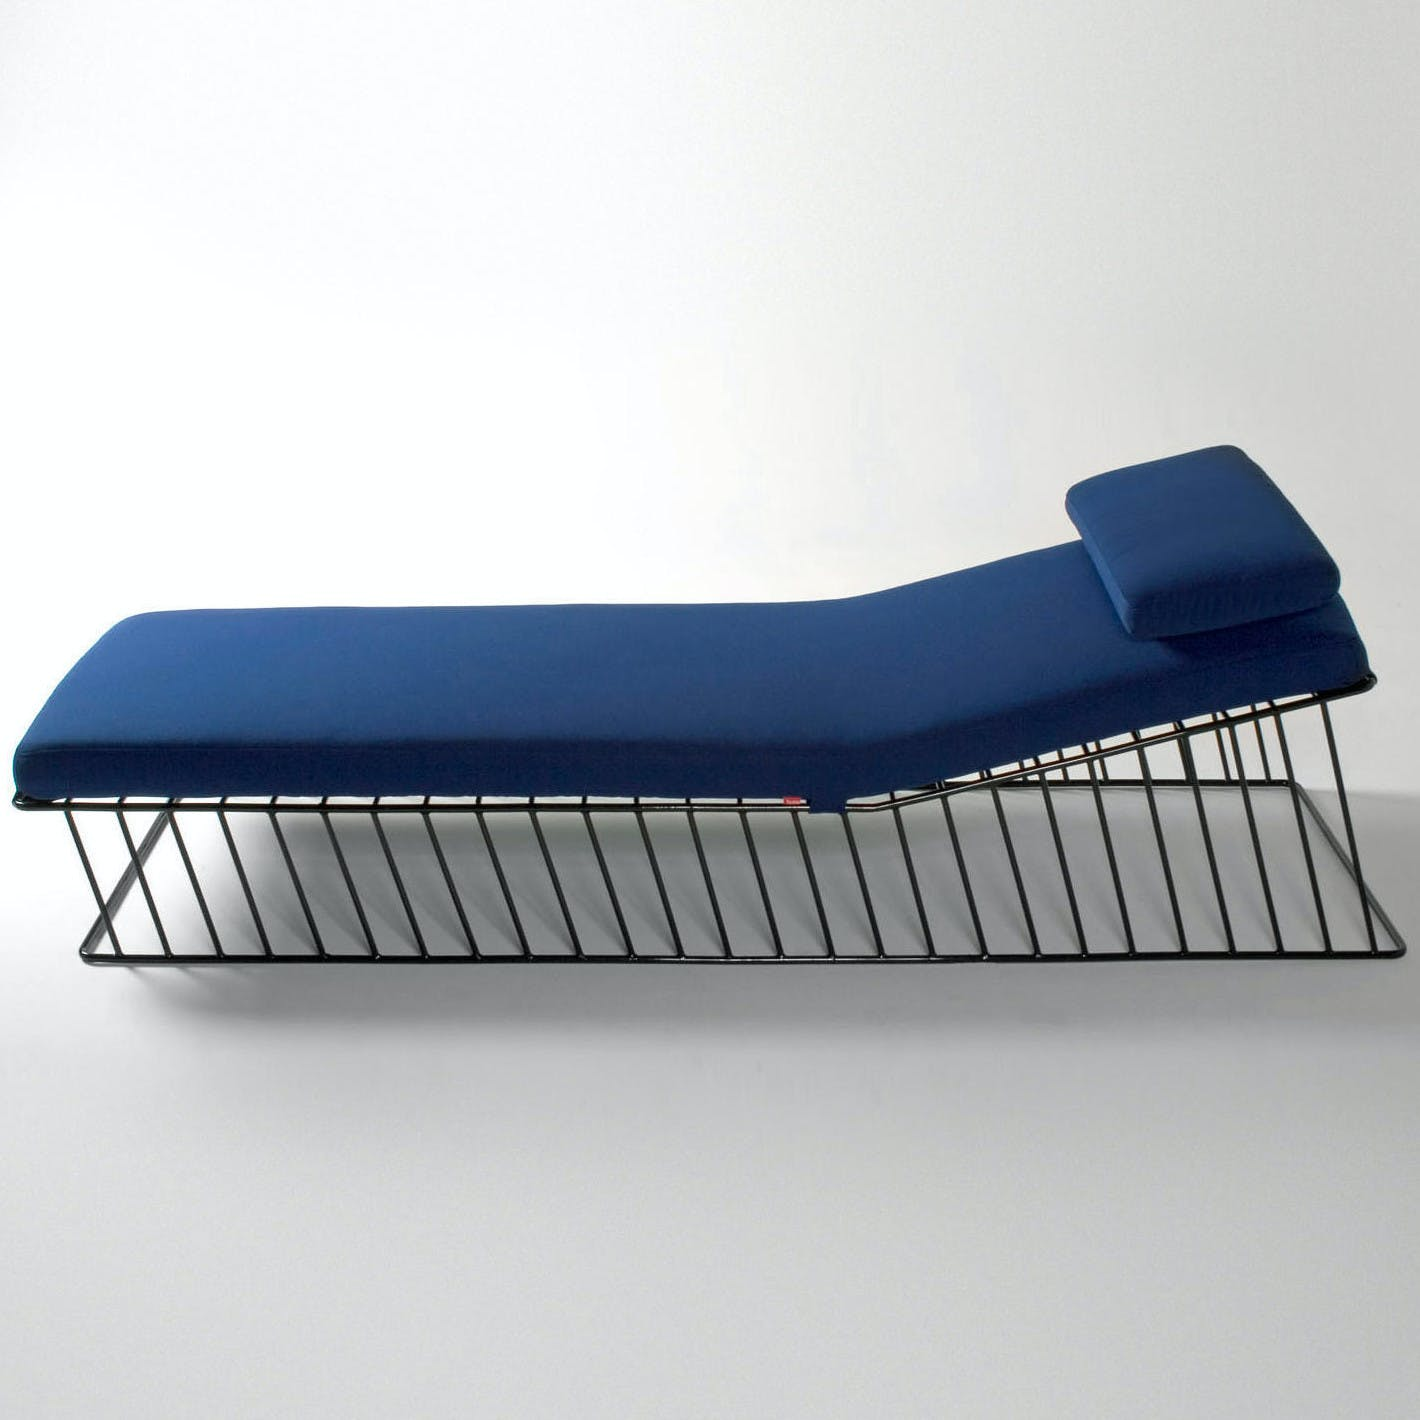 Phase Design Wired Italic Chaise Side Haute Living 190108 183834